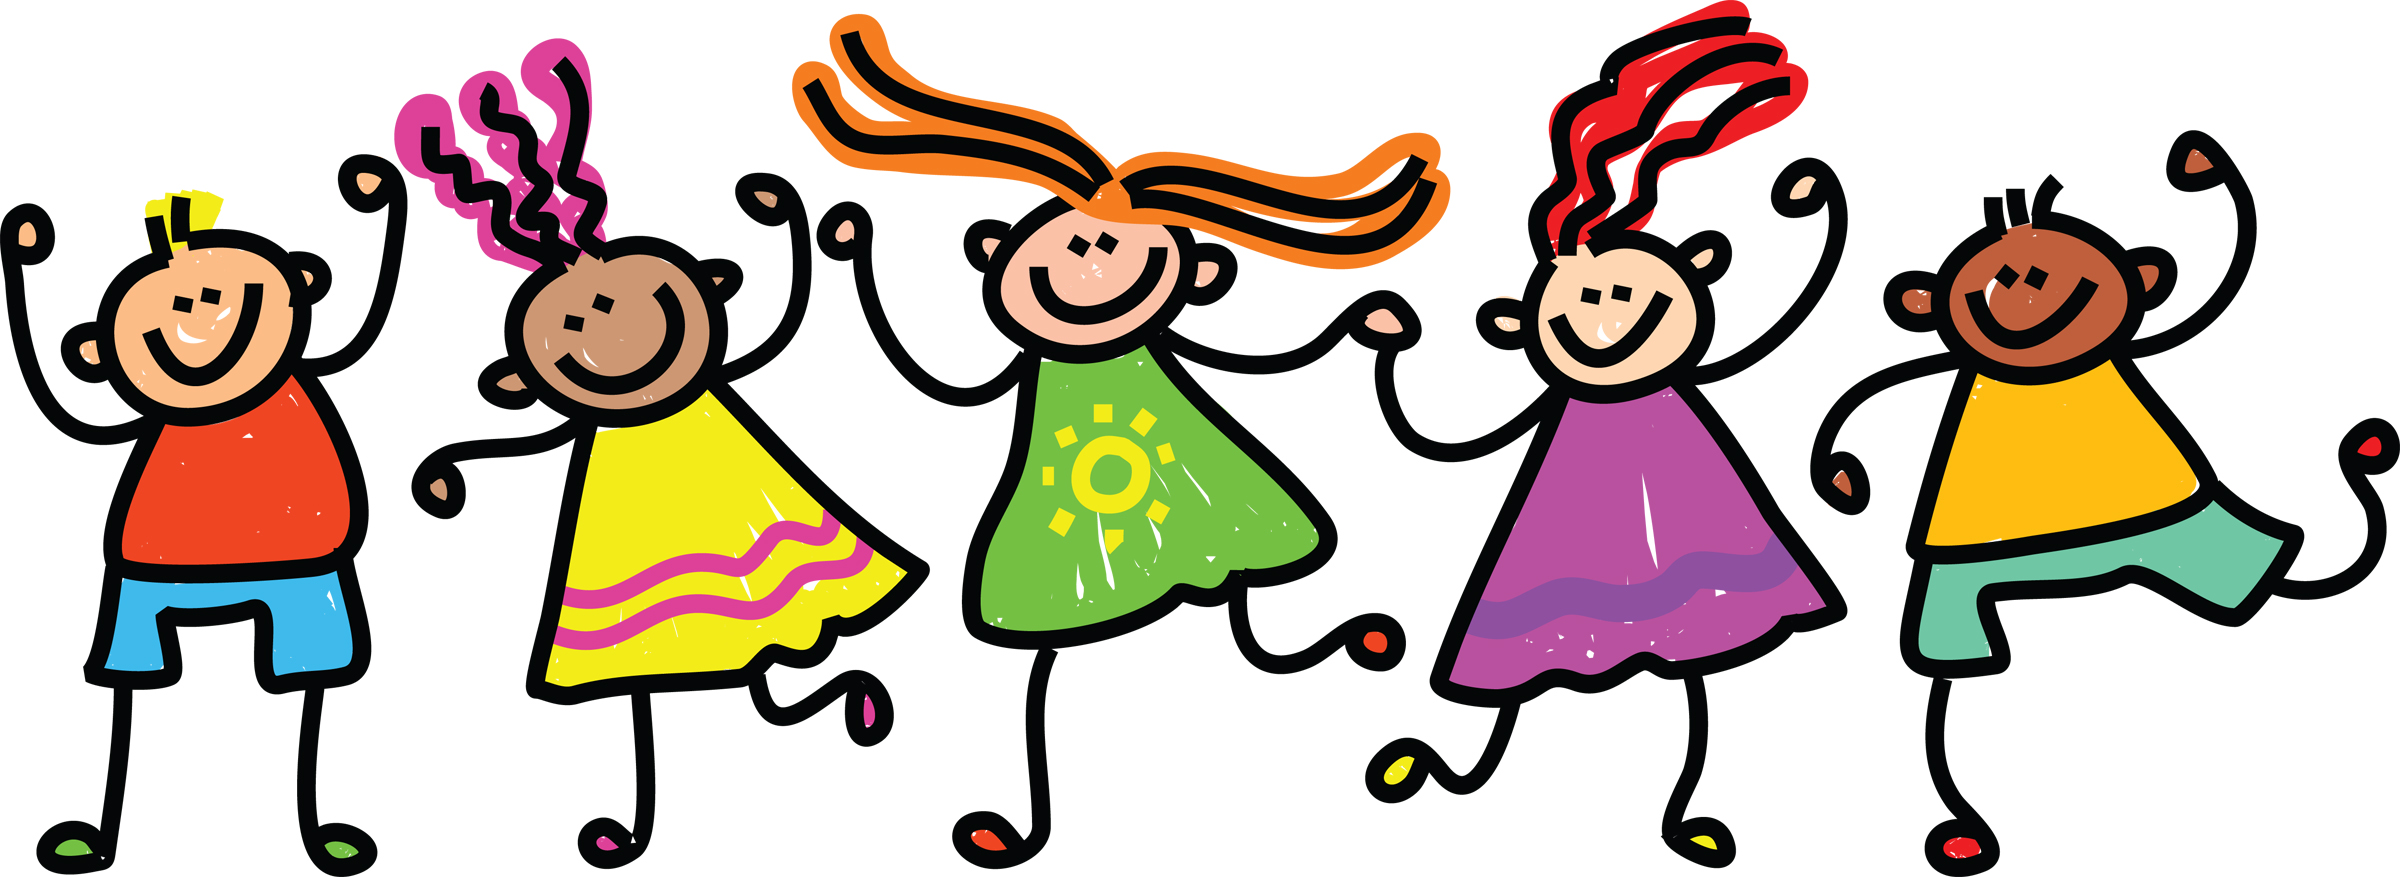 Happy Kids Dancing Clipart | Clipart Pan-Happy Kids Dancing Clipart | Clipart Panda - Free Clipart Images-12